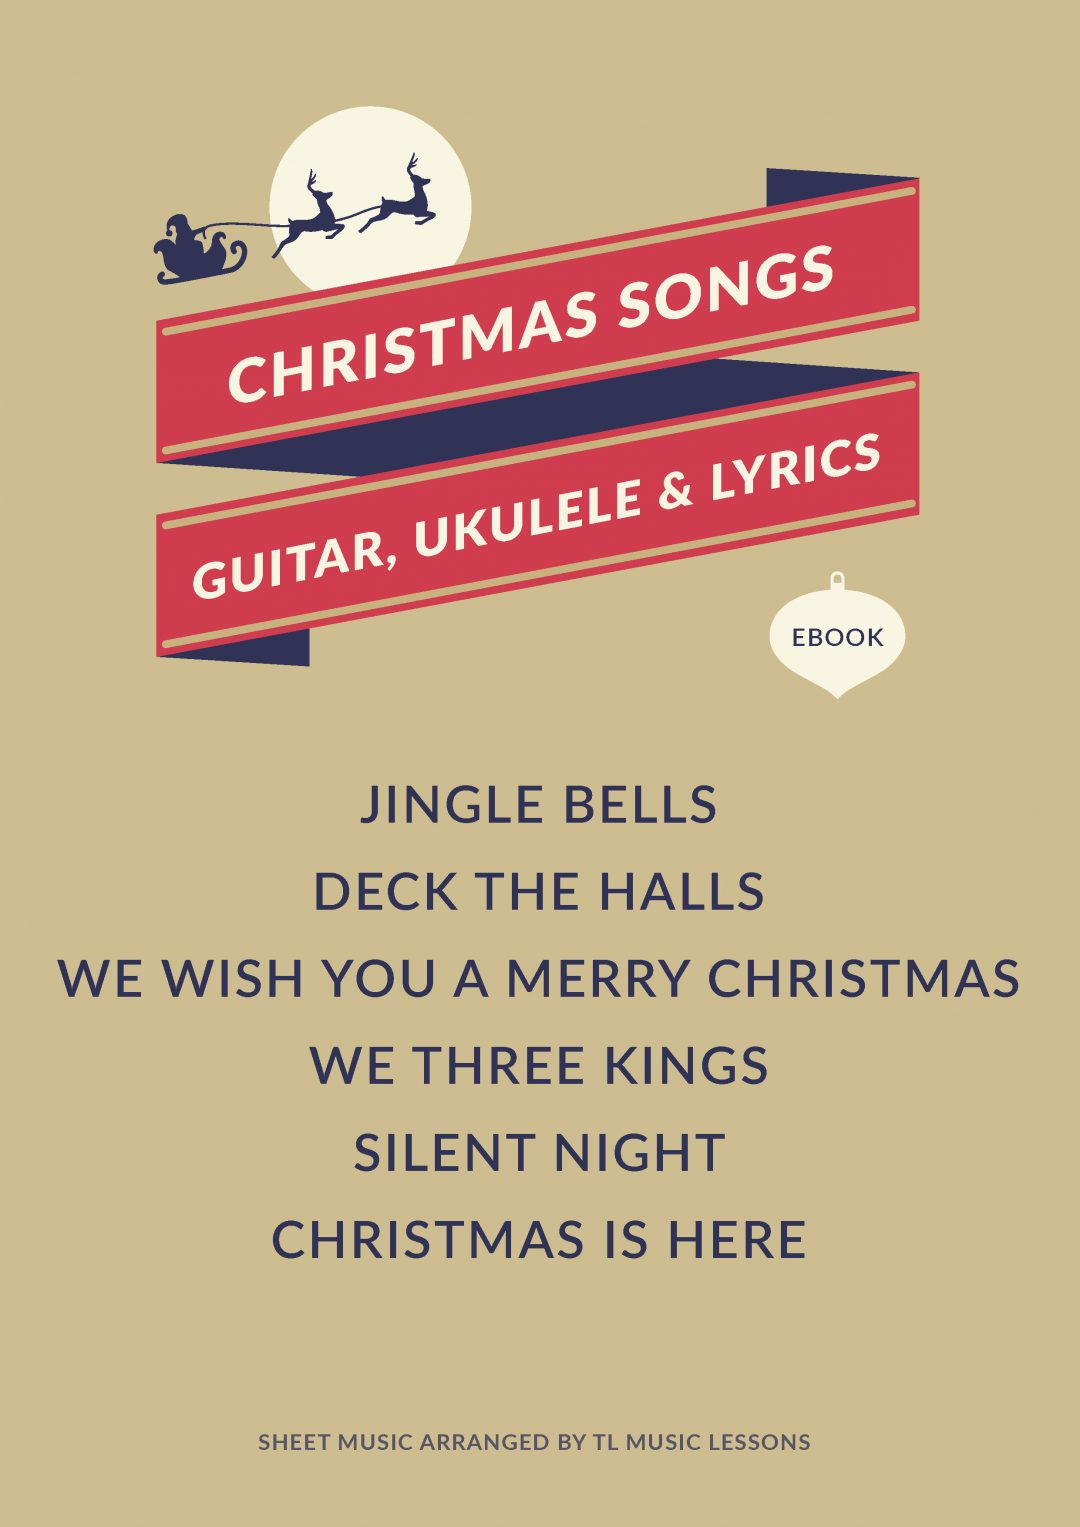 (PREMIUM) – Christmas Songs Ebook – Guitar, Ukulele and Lyrics